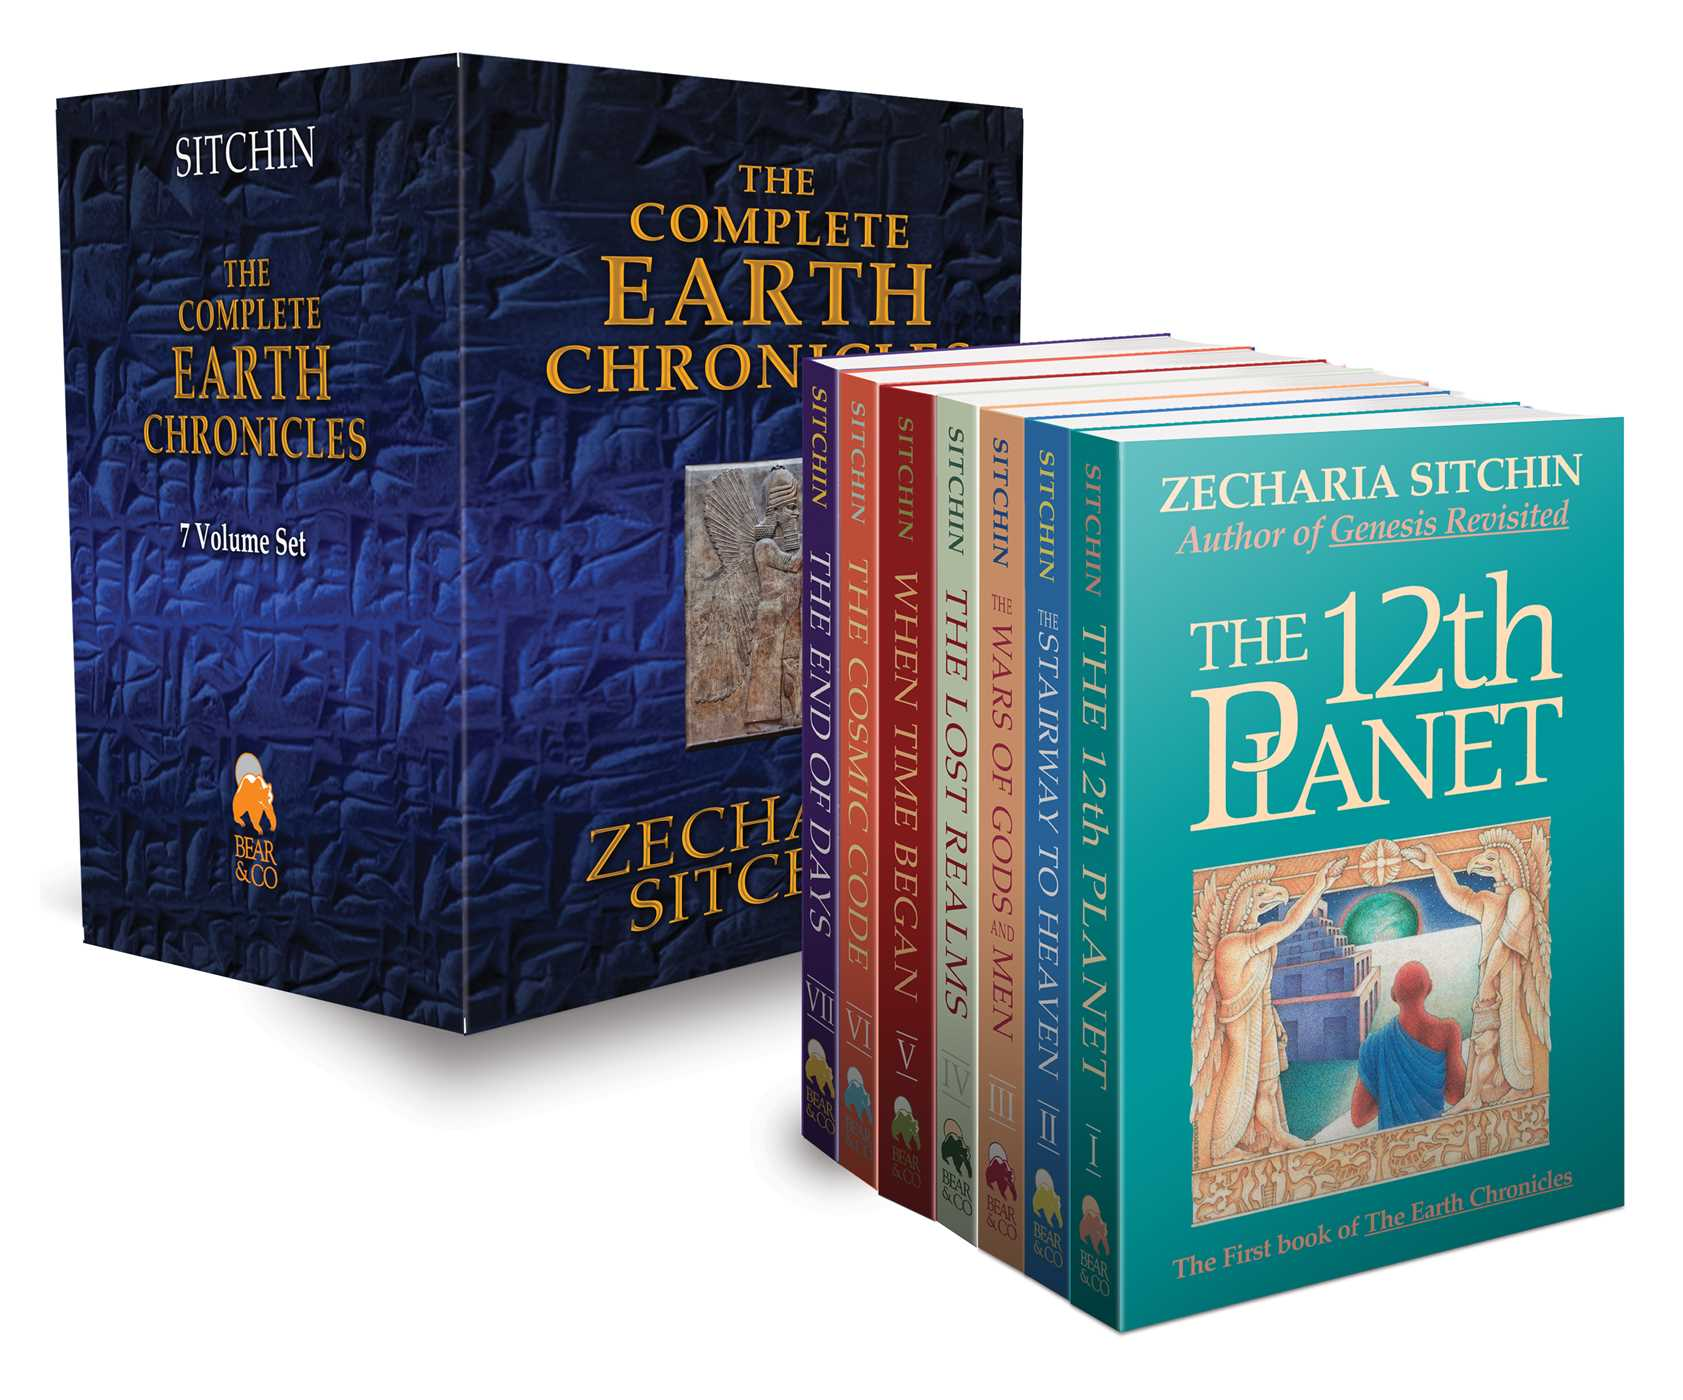 The complete earth chronicles 9781591432012 hr